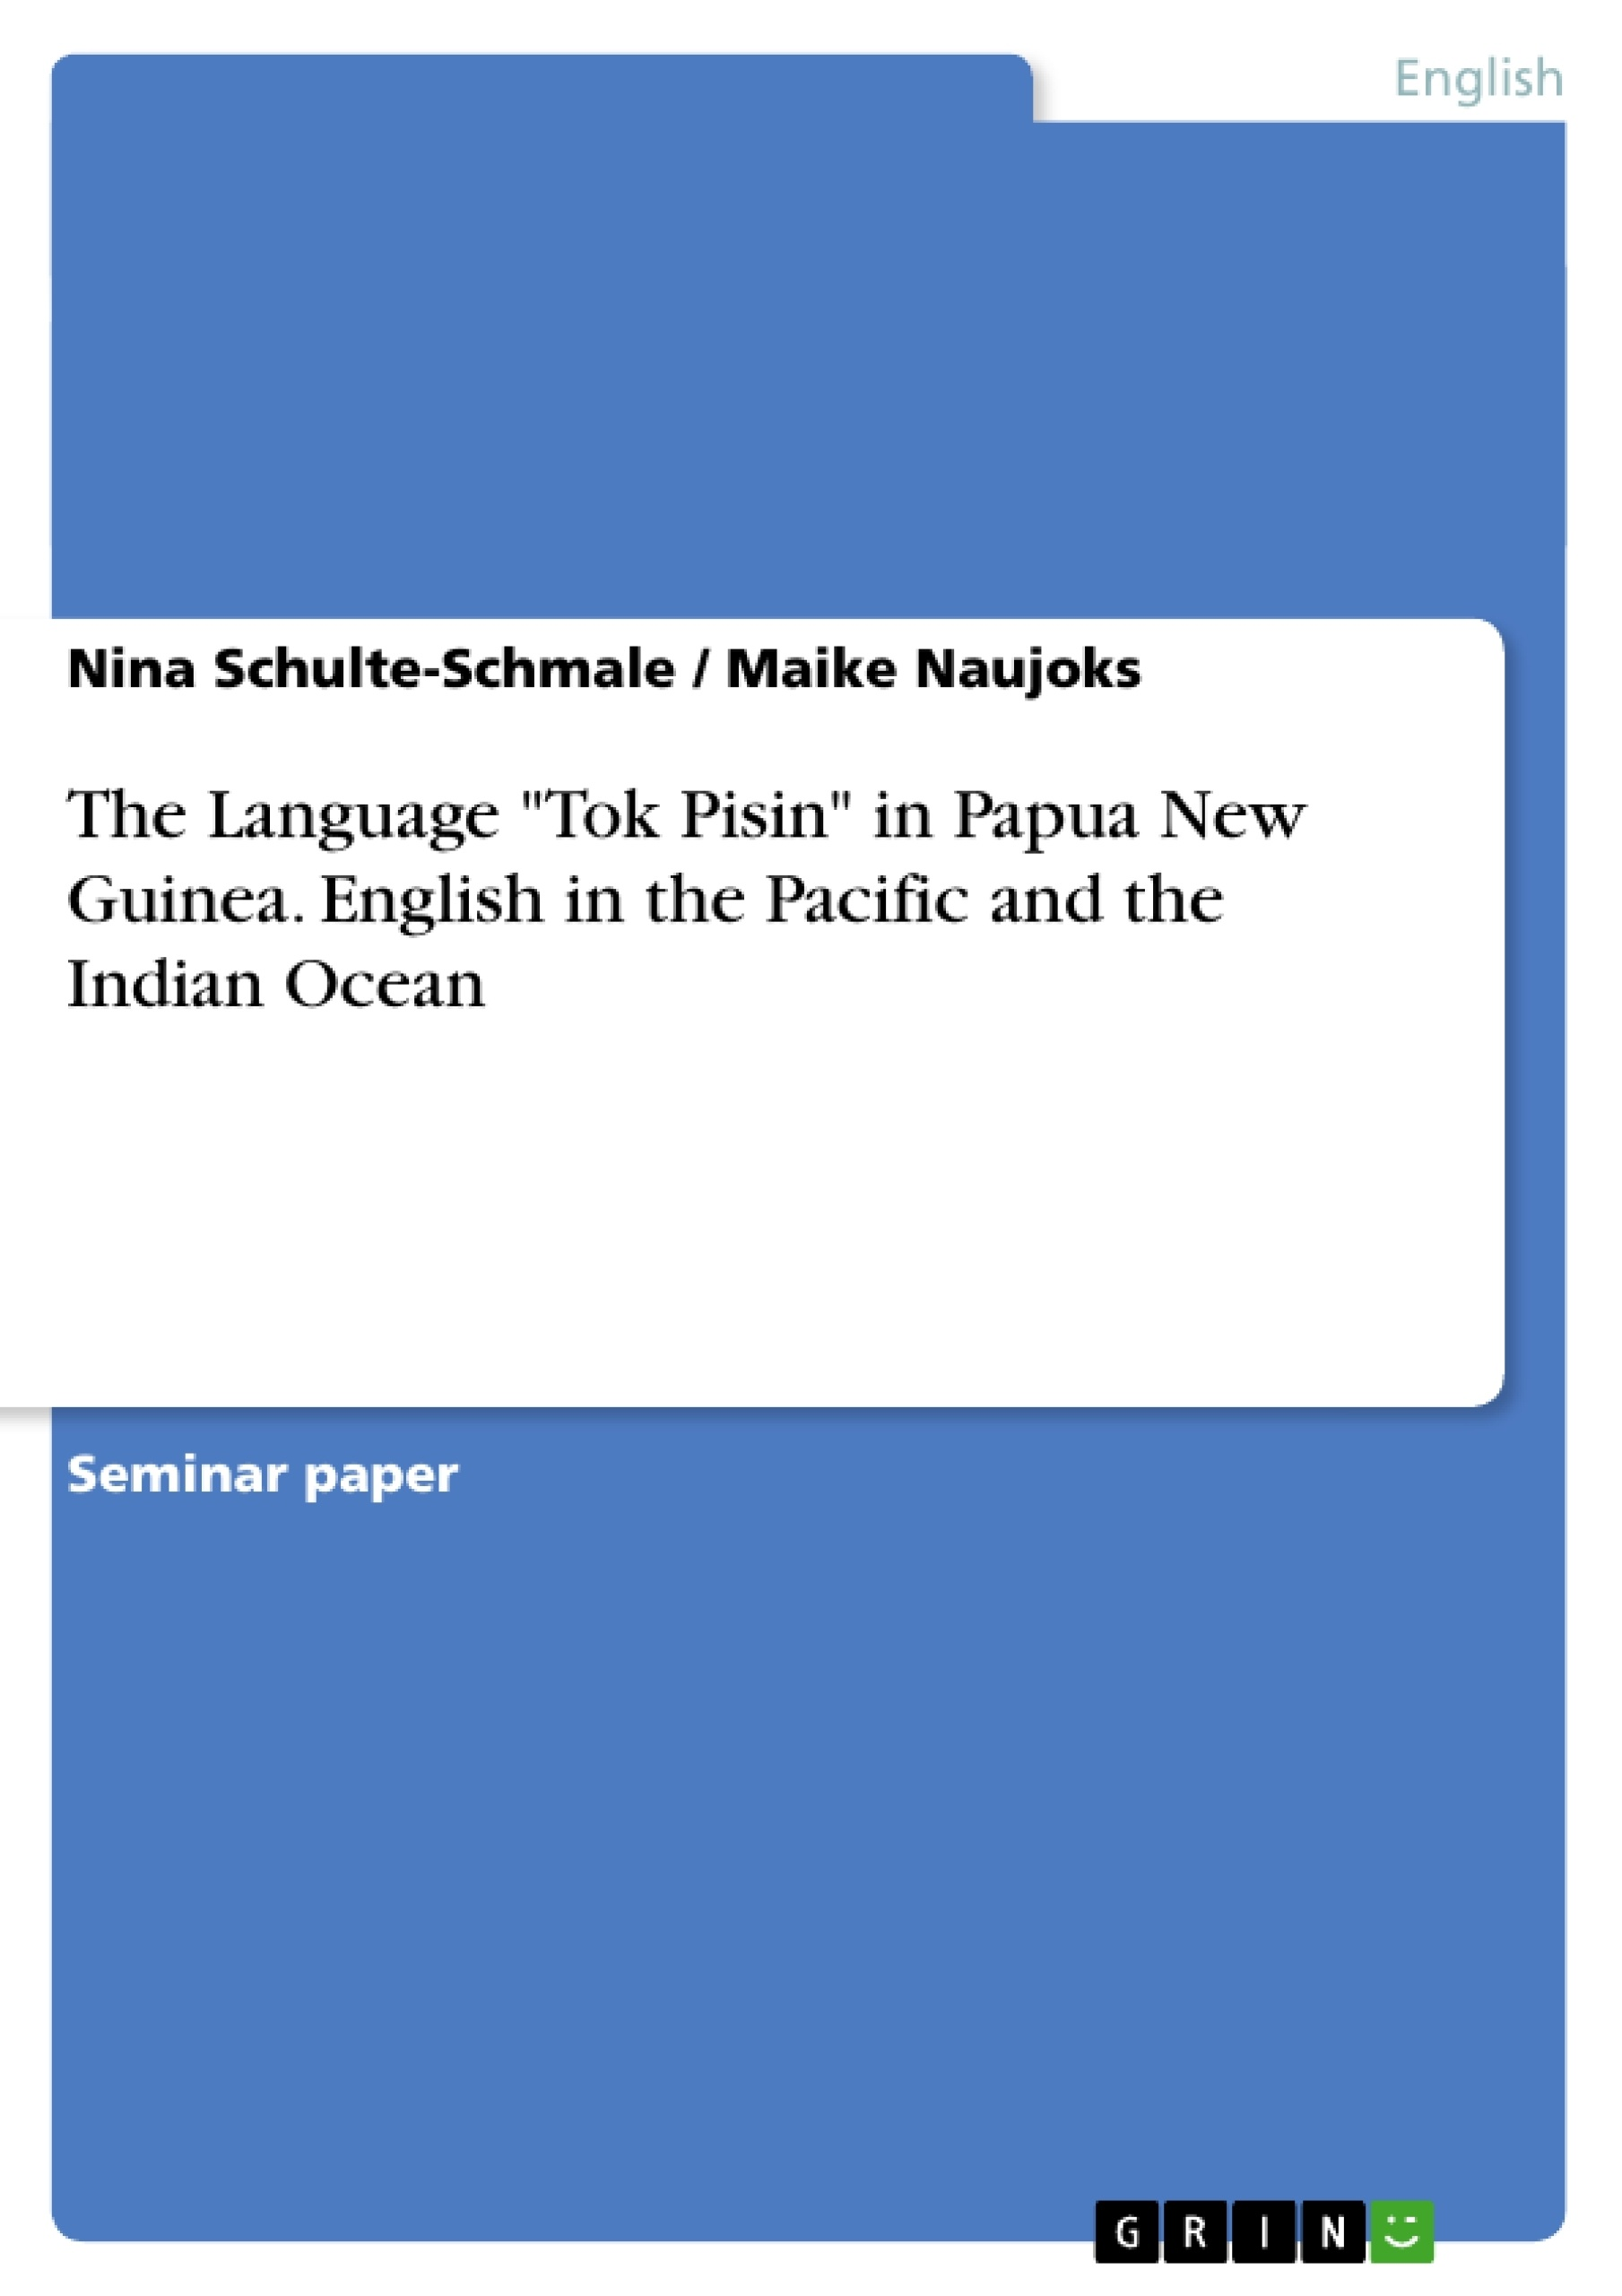 Thesis on english language acquisition